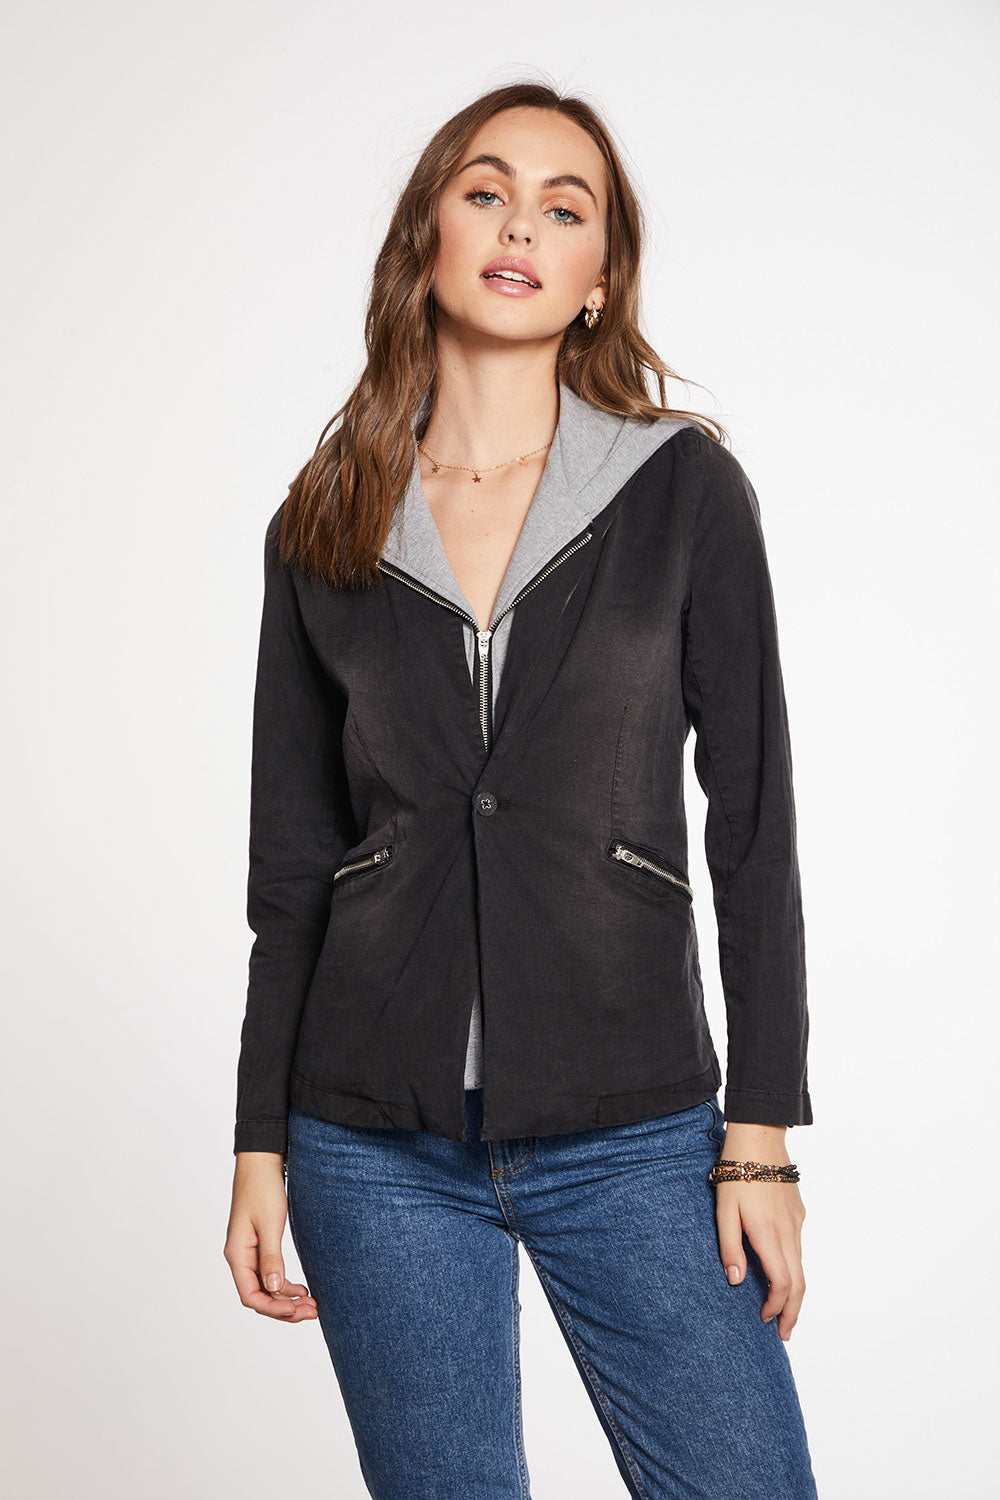 Stretch Twill Contrast Hooded Blazer WOMENS - chaserbrand